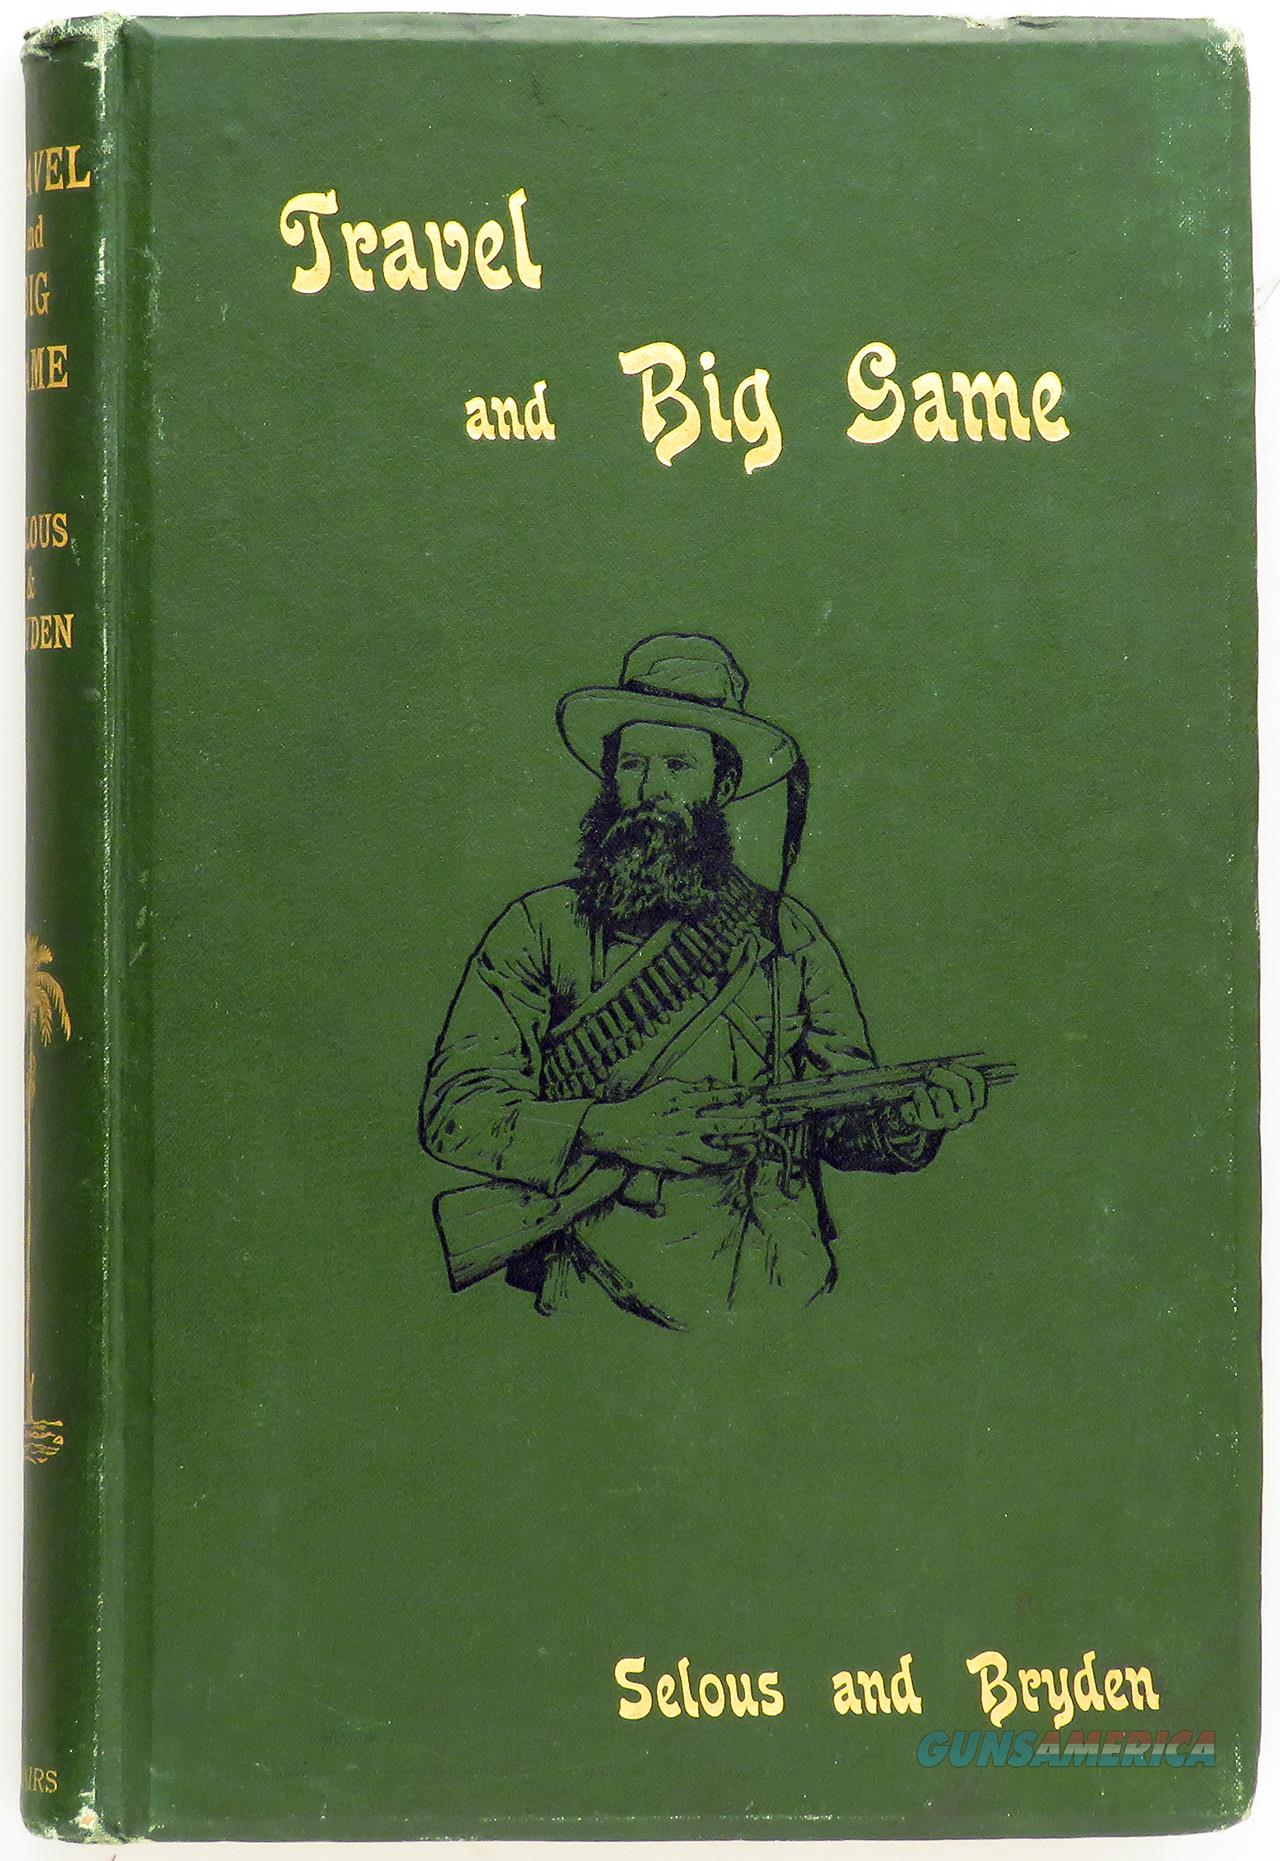 Travel and Big Game, Selous and Bryden, published in 1897, good condition   Non-Guns > Books & Magazines